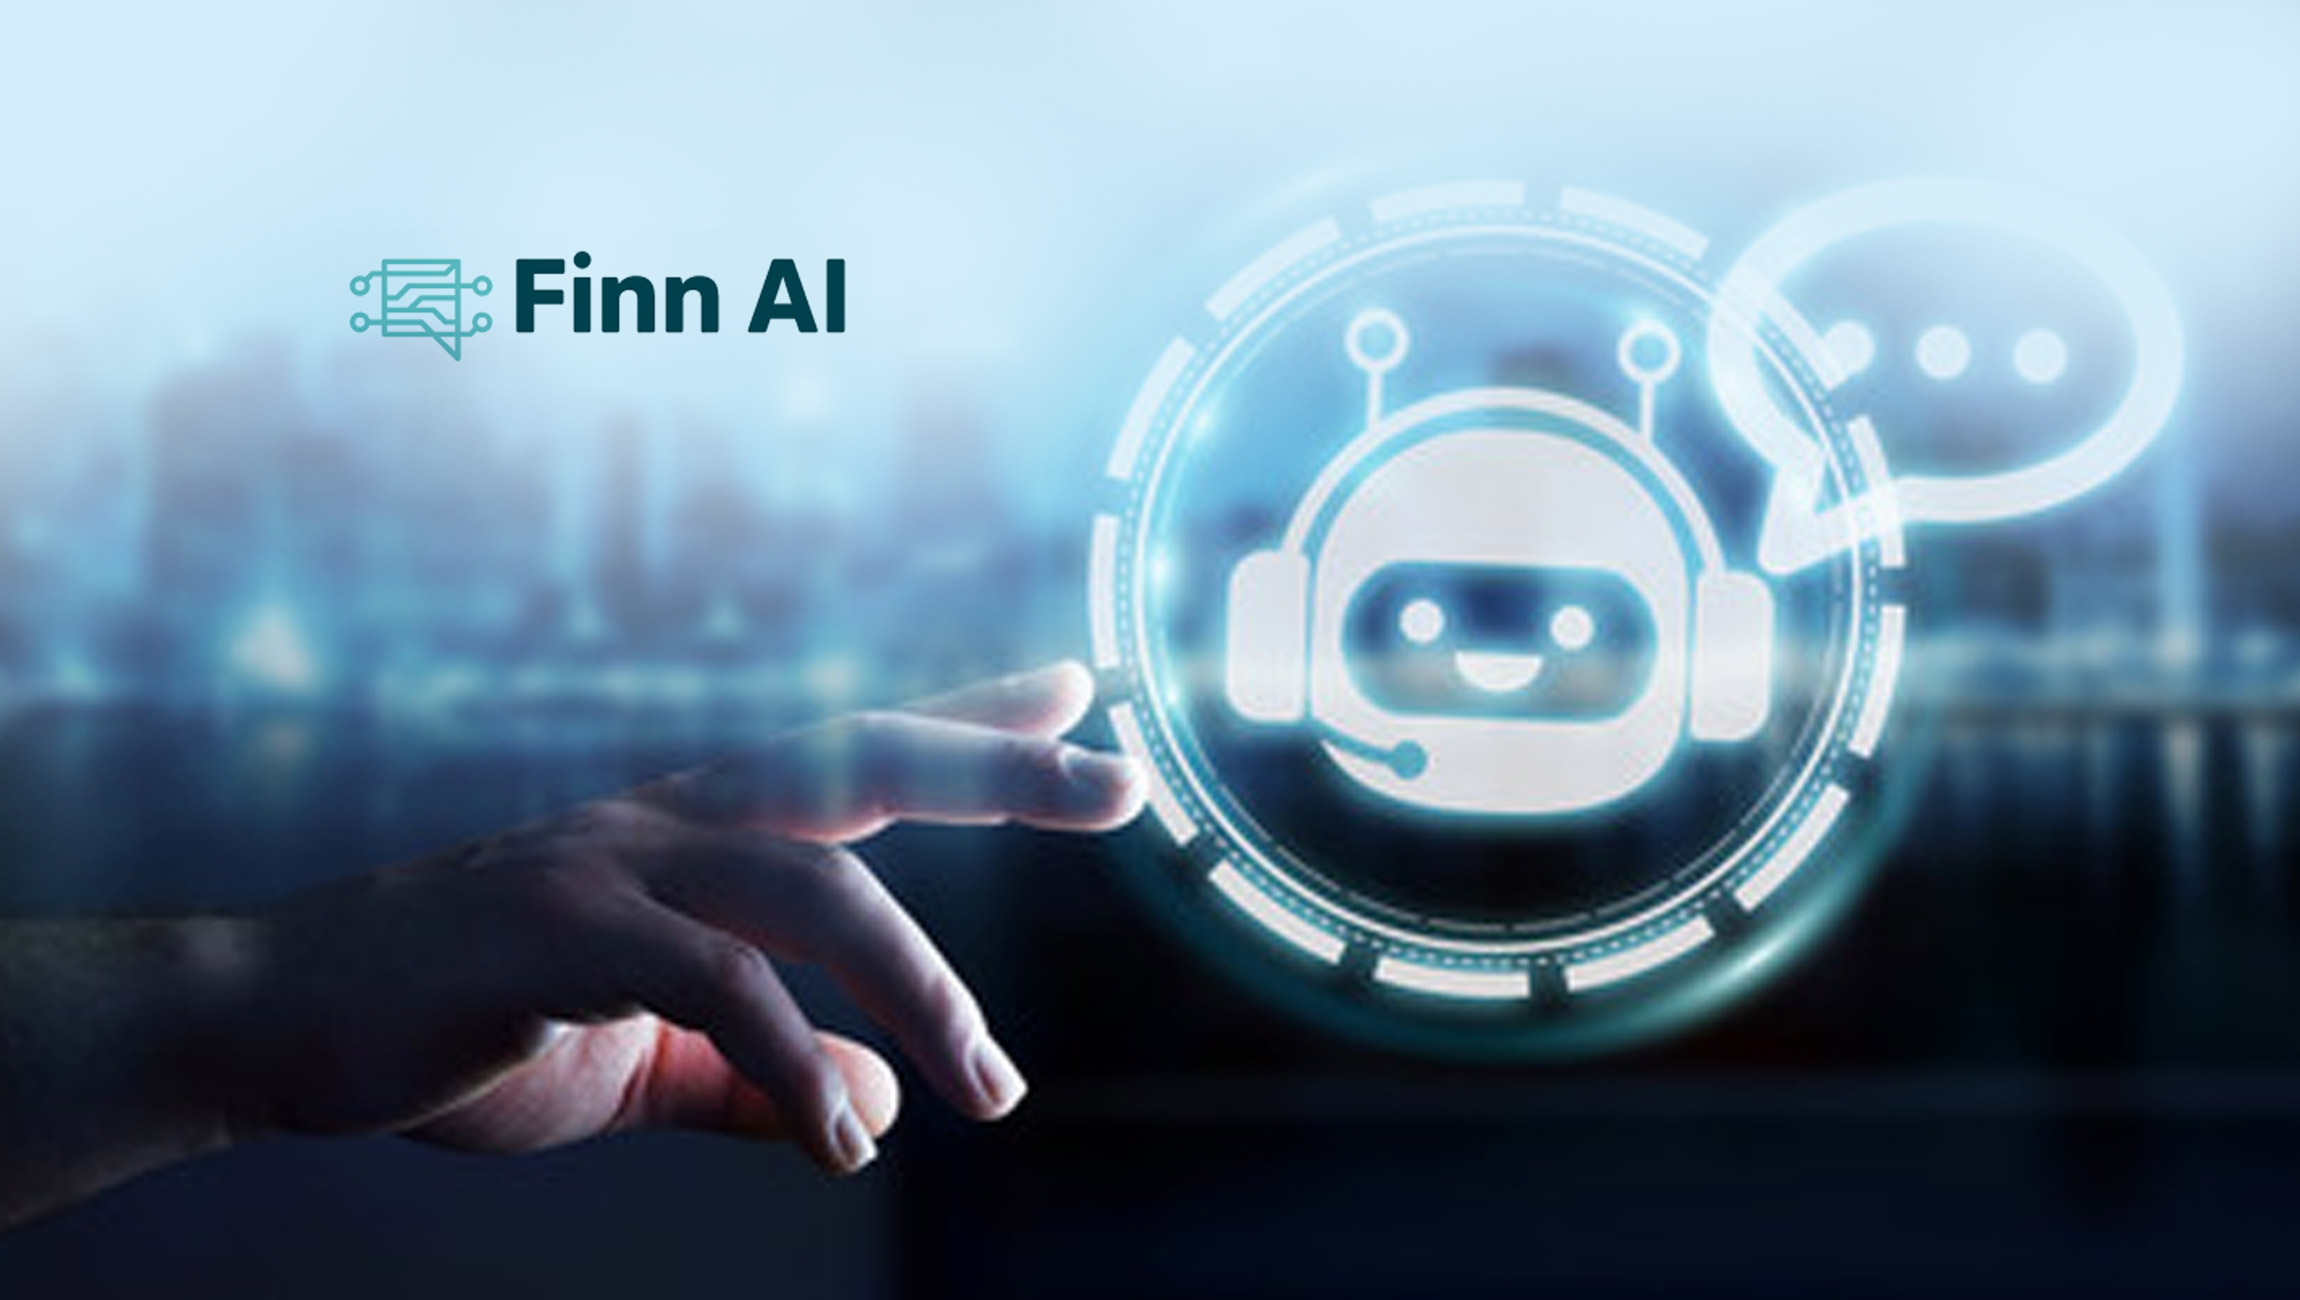 Finn AI's Conversational AI Chatbot Capability is Now Available on the Q2 Digital Banking Platform